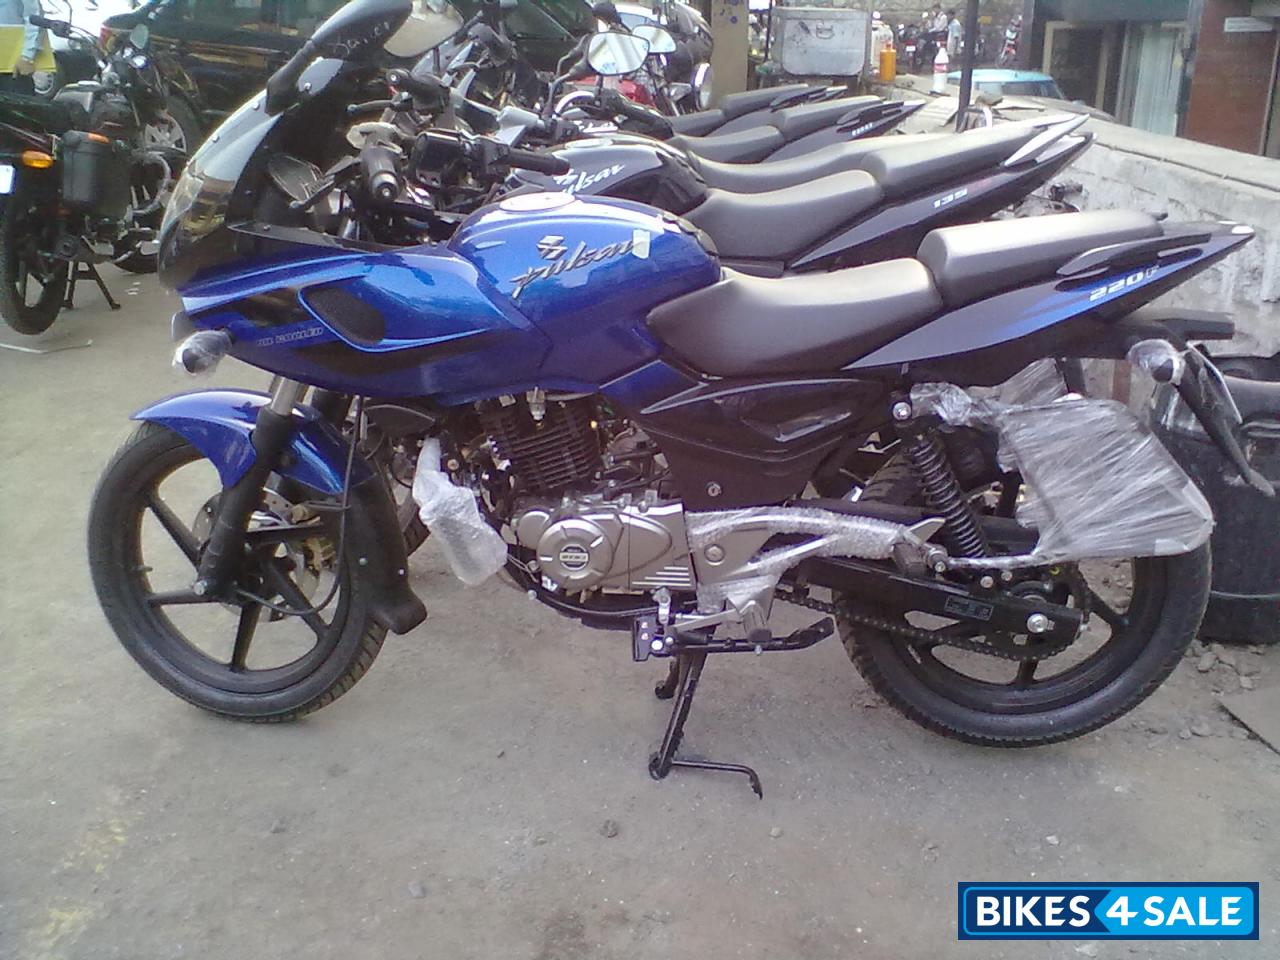 Best Price Motorcycle Insurance